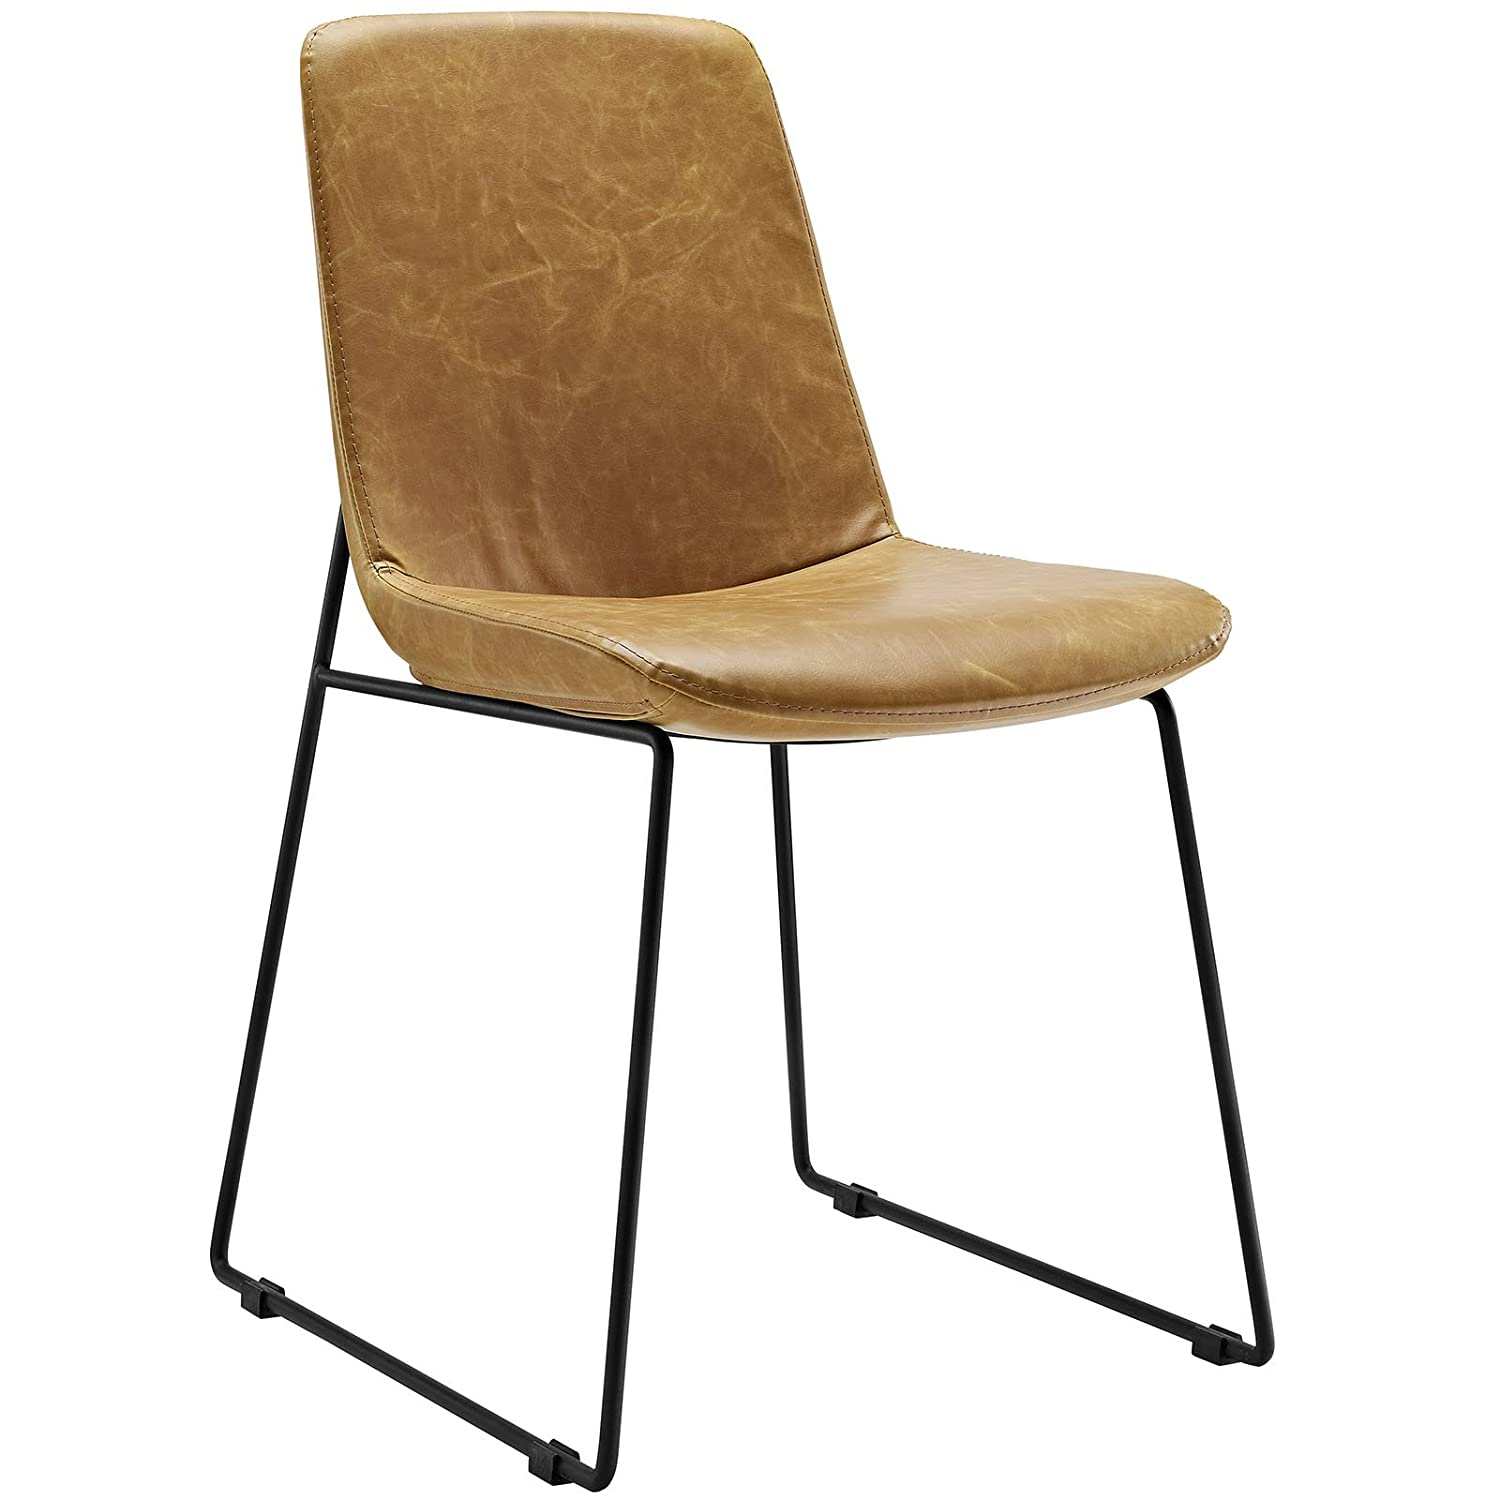 Modway Invite Mid-Century Modern Faux Leather Upholstered Kitchen and Dining Room Chair in Tan